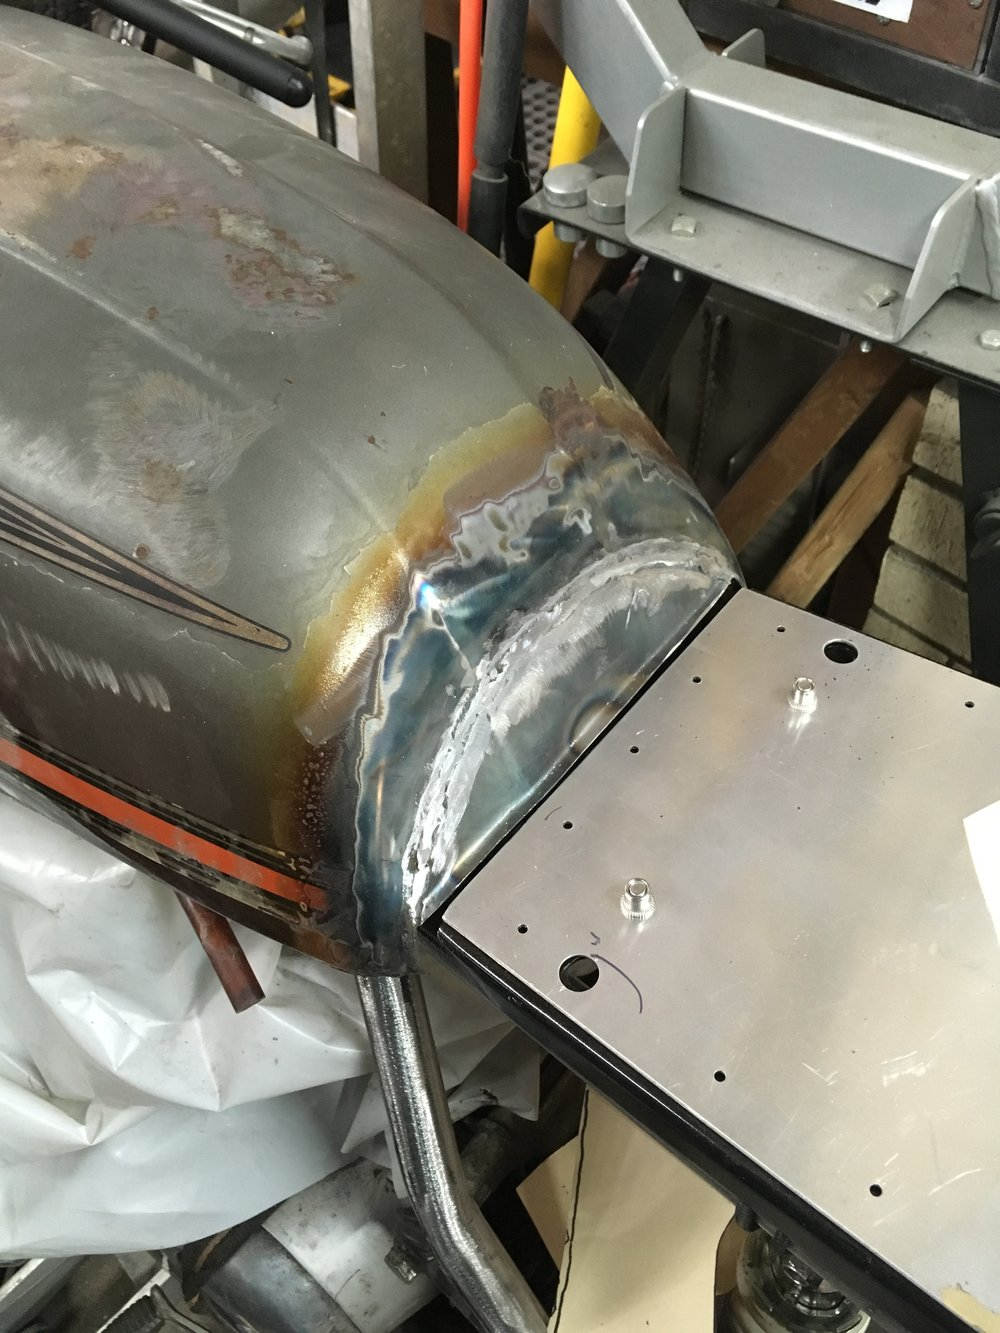 A thin steel cover was welded in extending the tank character lines as well. The tank edge was heated and bent downward in line with the new panel, and then welded only on the outermost edge of the tank's pinch welded seam, to keep from having to weld the tank skin directly.